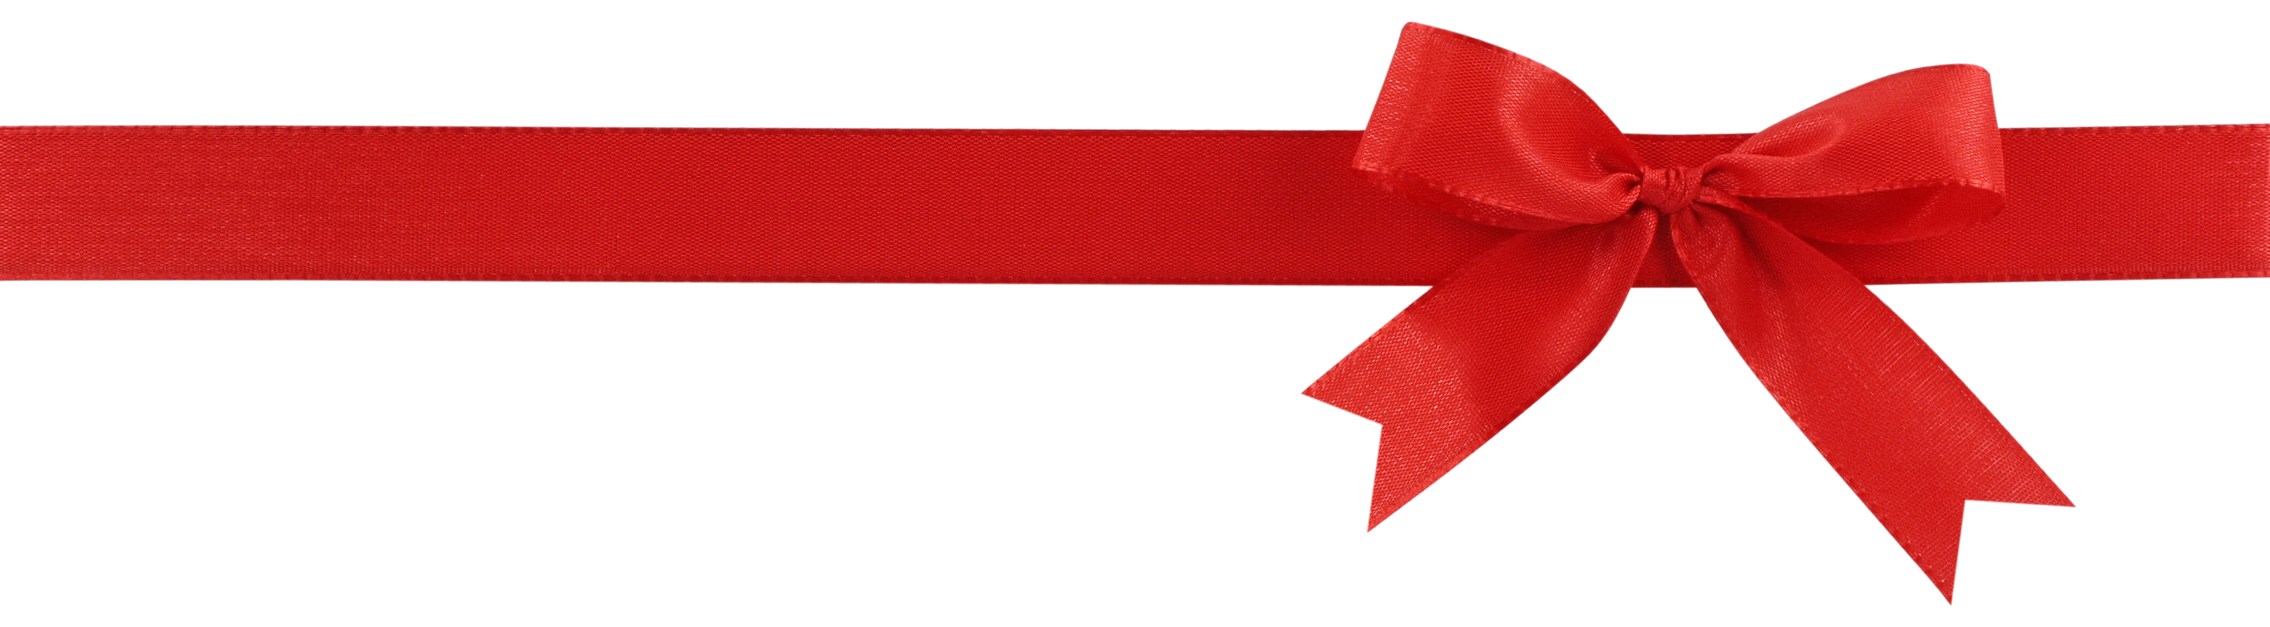 Banner Bow PNG Transparent image #42248